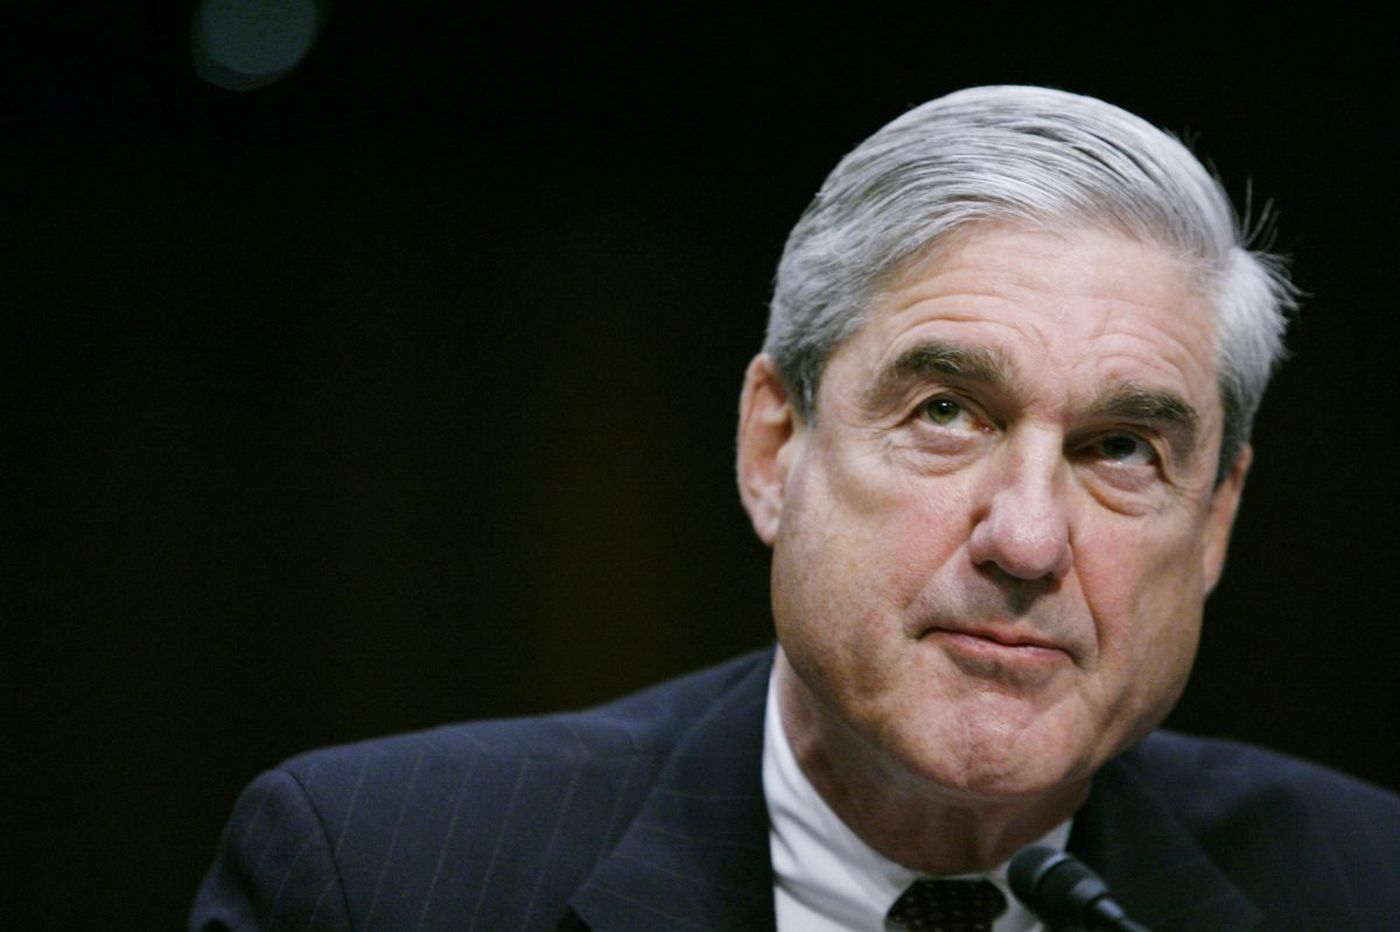 Mueller investigation results, top 3 Philly sports teams make big news   Morning Newsletter